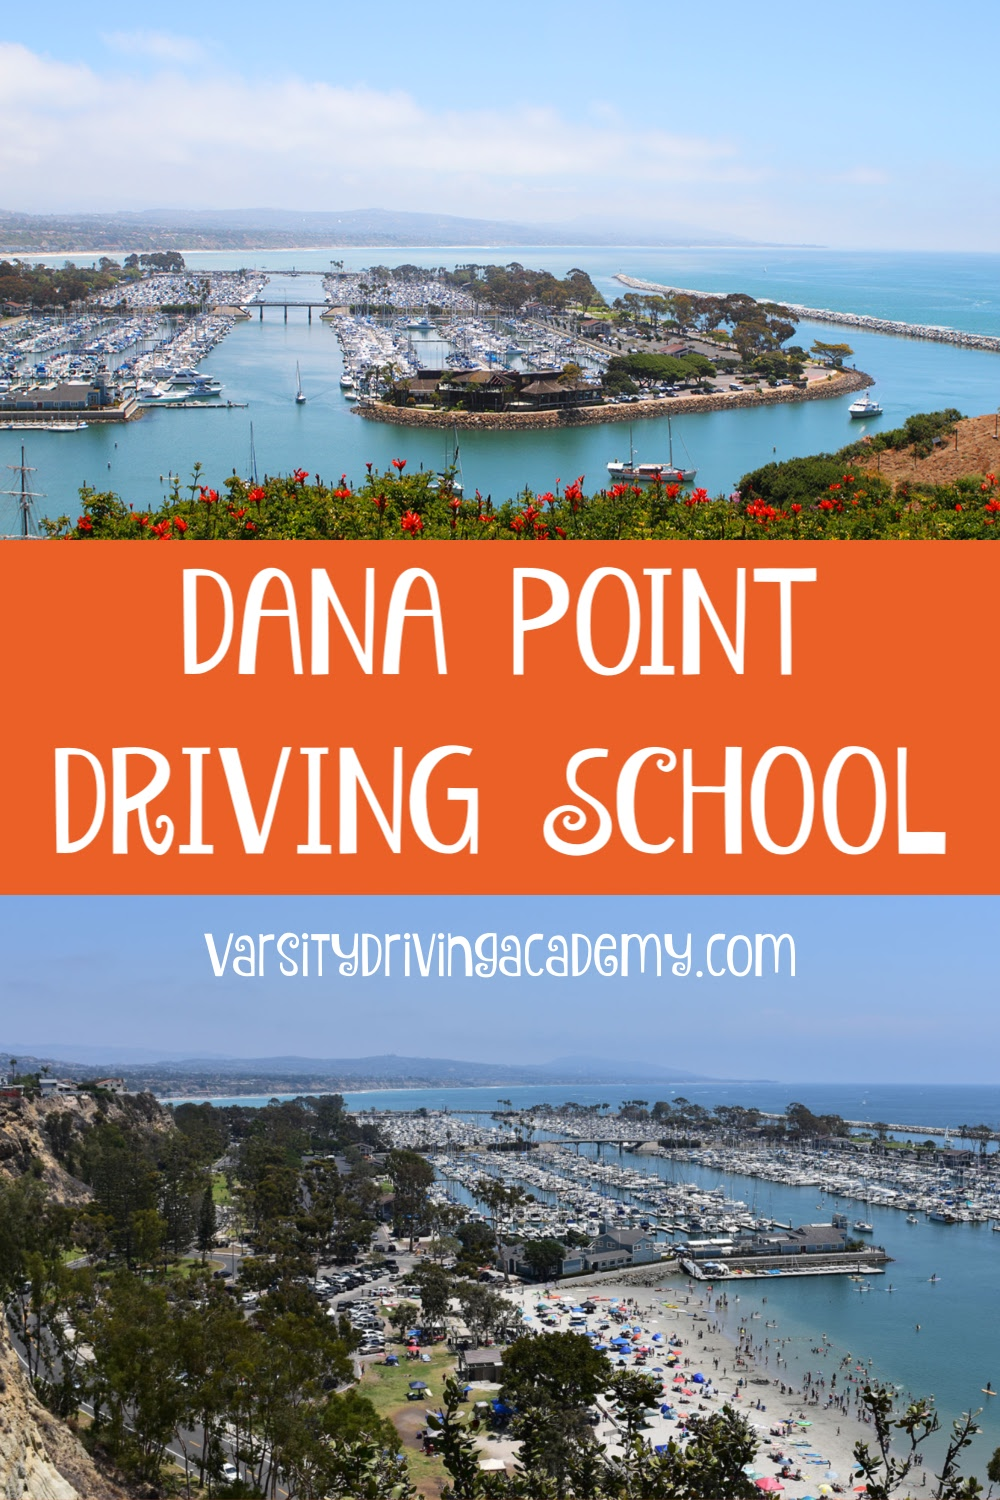 Varsity Driving Academy is the best Dana Point driving school. You will want your Dana Point driver's ed to be from the best so you can drive in Orange County like the best.